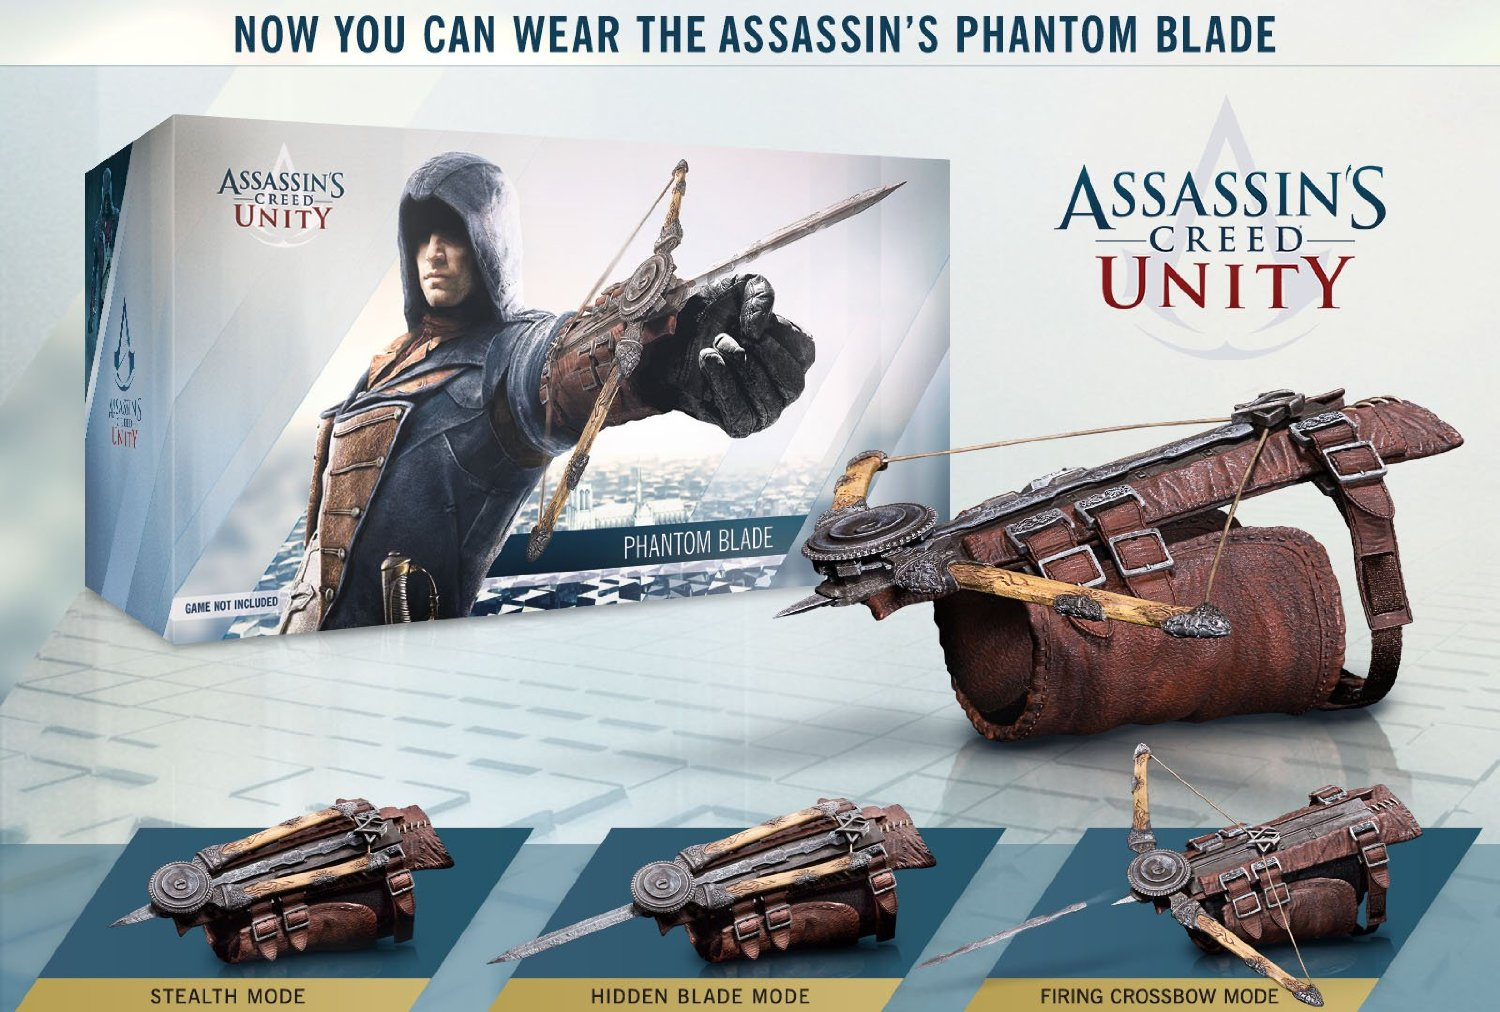 Assassins Creed 5 Unity Hidden Blade Action Figure Edward Kenway Cosplay Costume New in Retail Box потолочный светильник idlamp 406 406 3a oldbronze